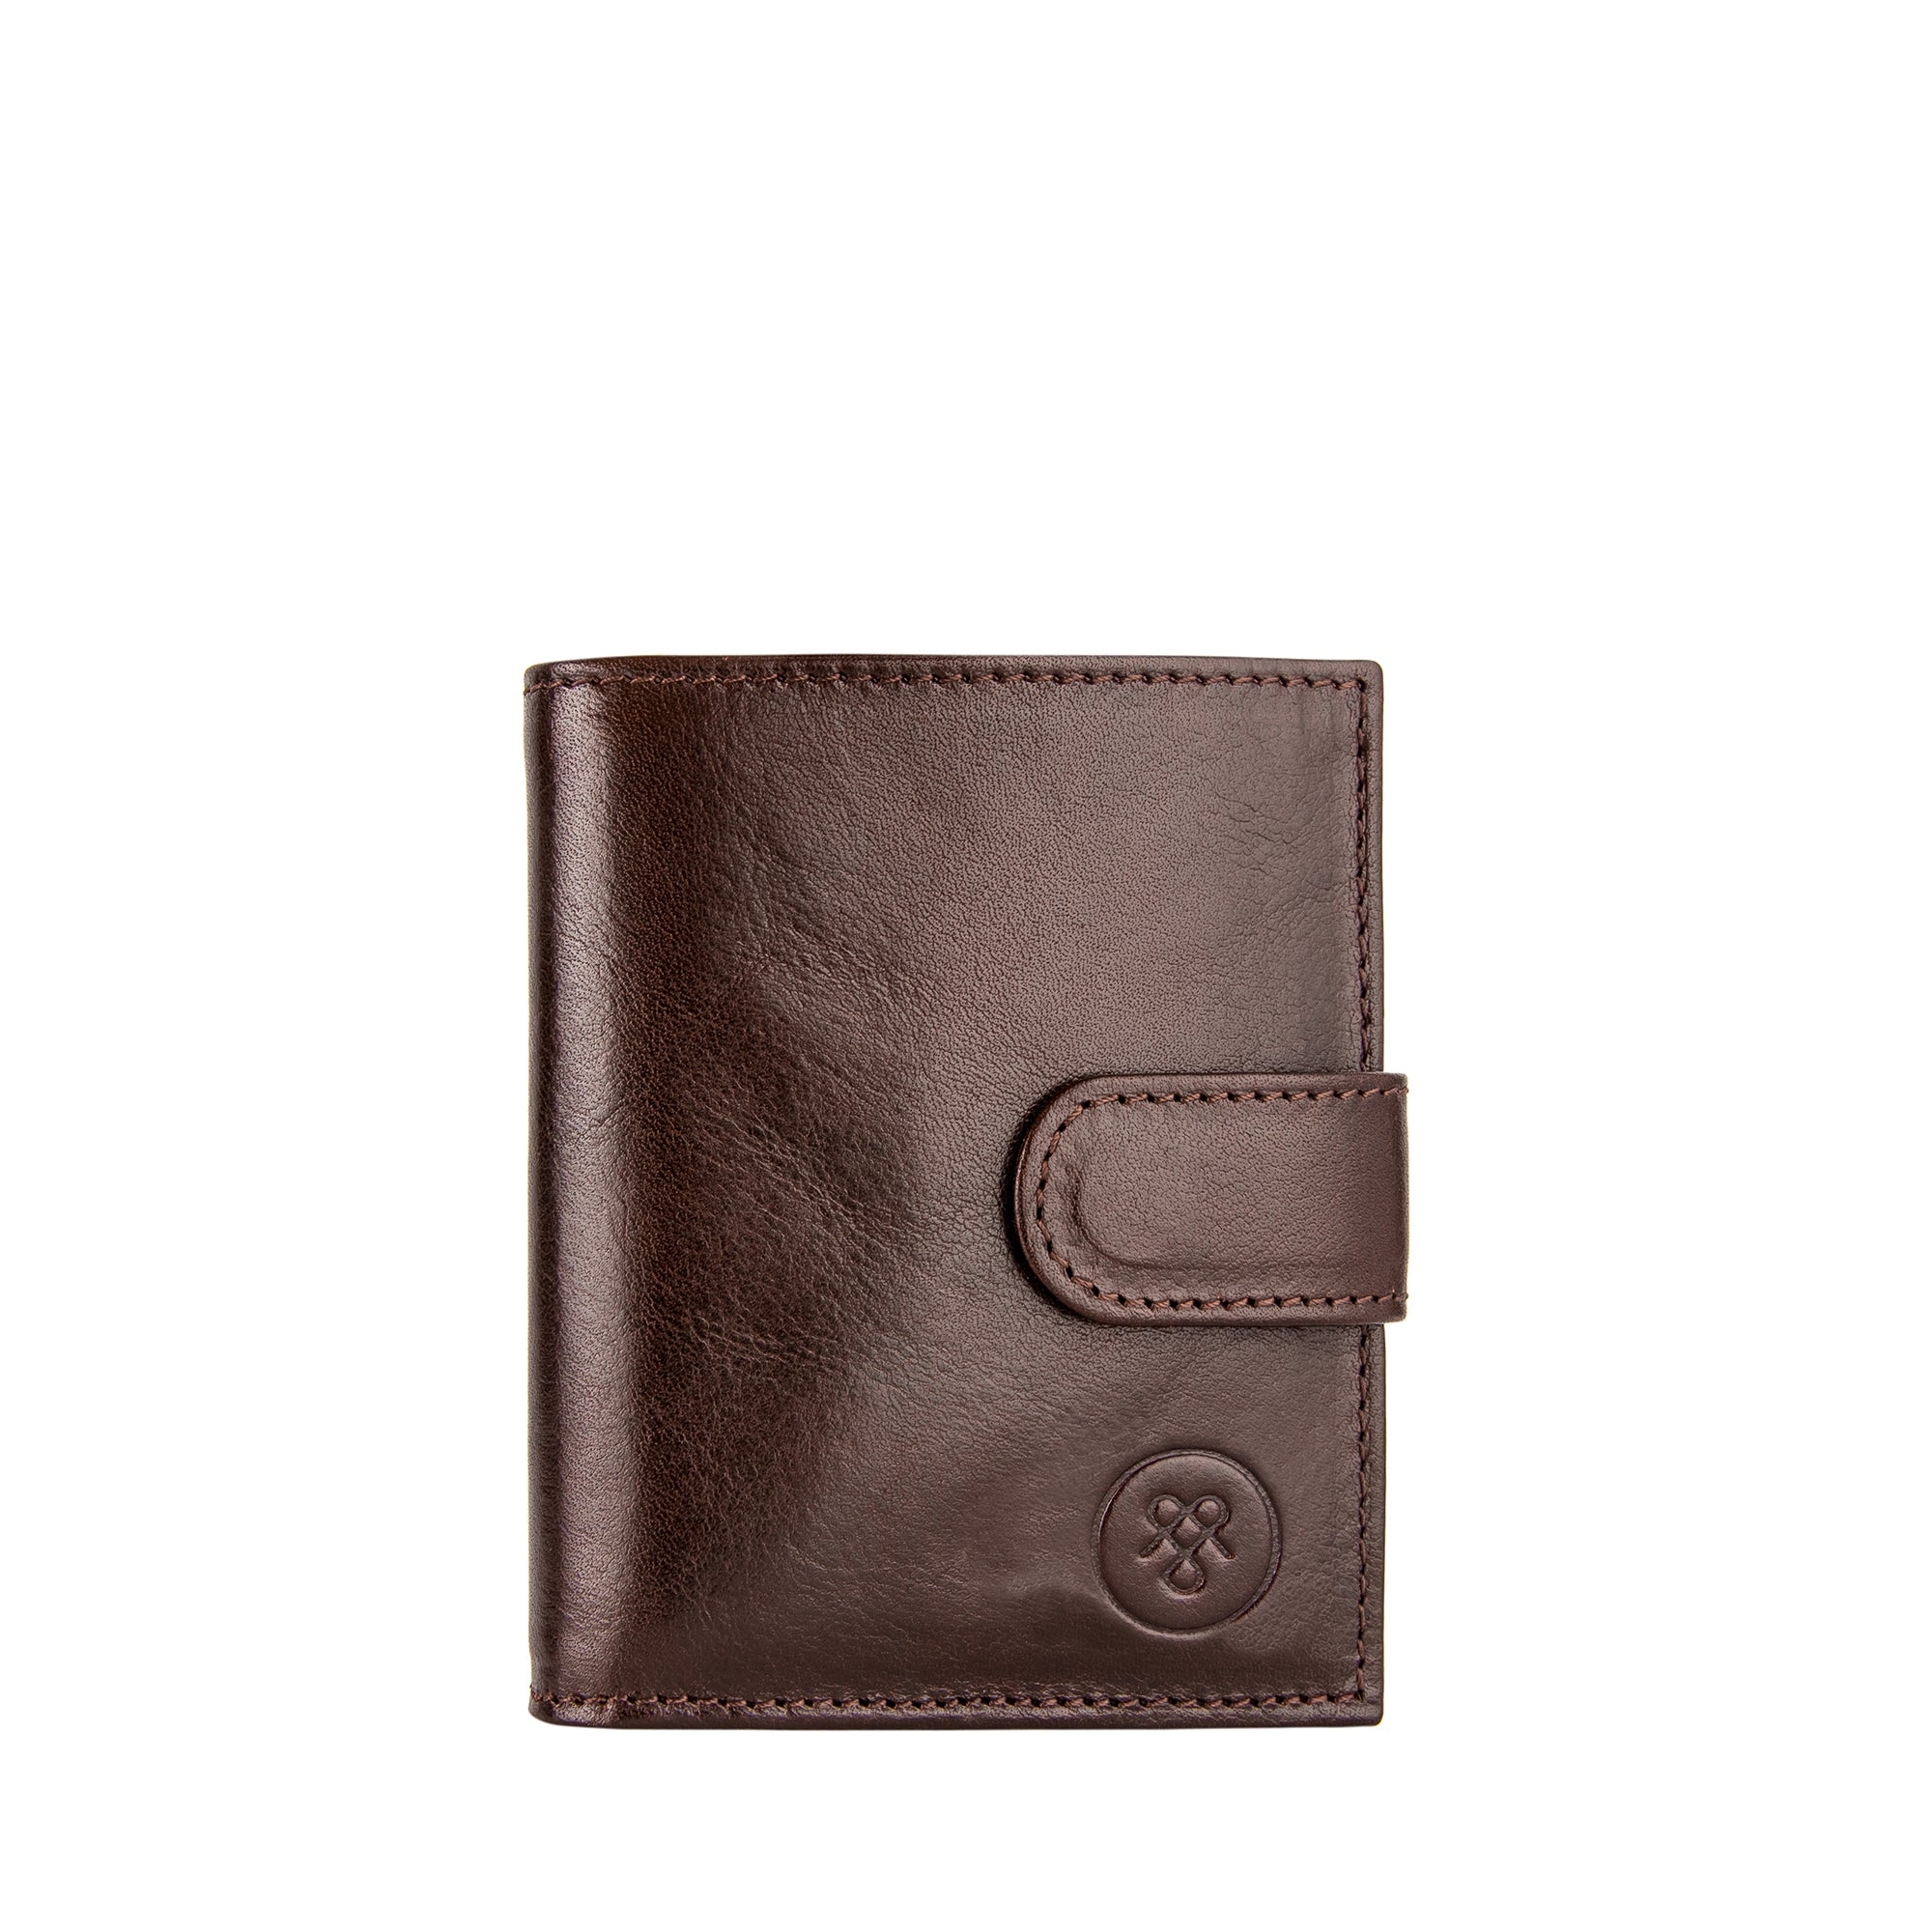 Image 1 of the 'Pietre' Brown Veg-Tanned Leather Compact Wallet